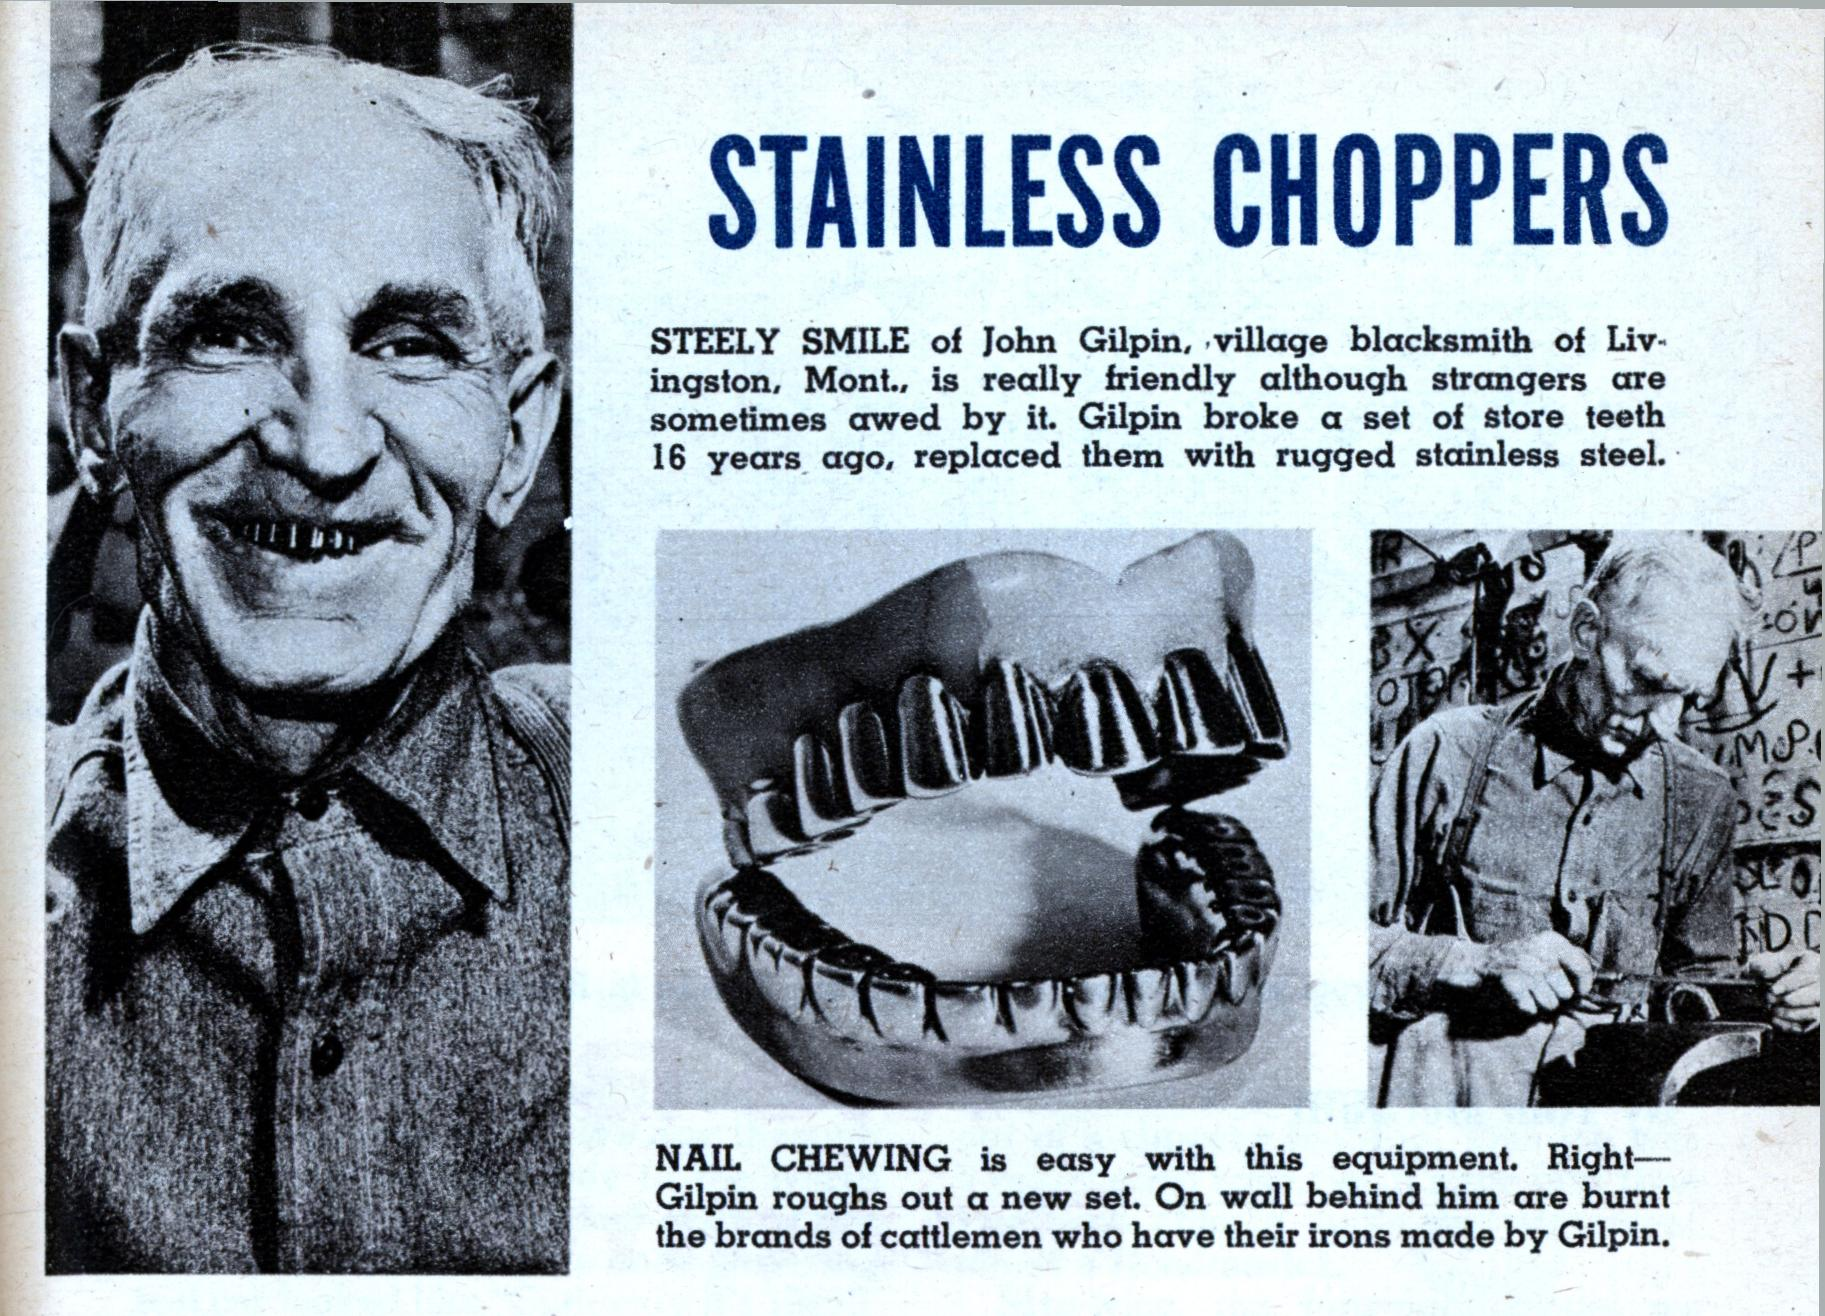 Wow, this is actually the second guy I've seen with homemade stainless steel dentures. Here is another from 1937. I wonder how common this was.